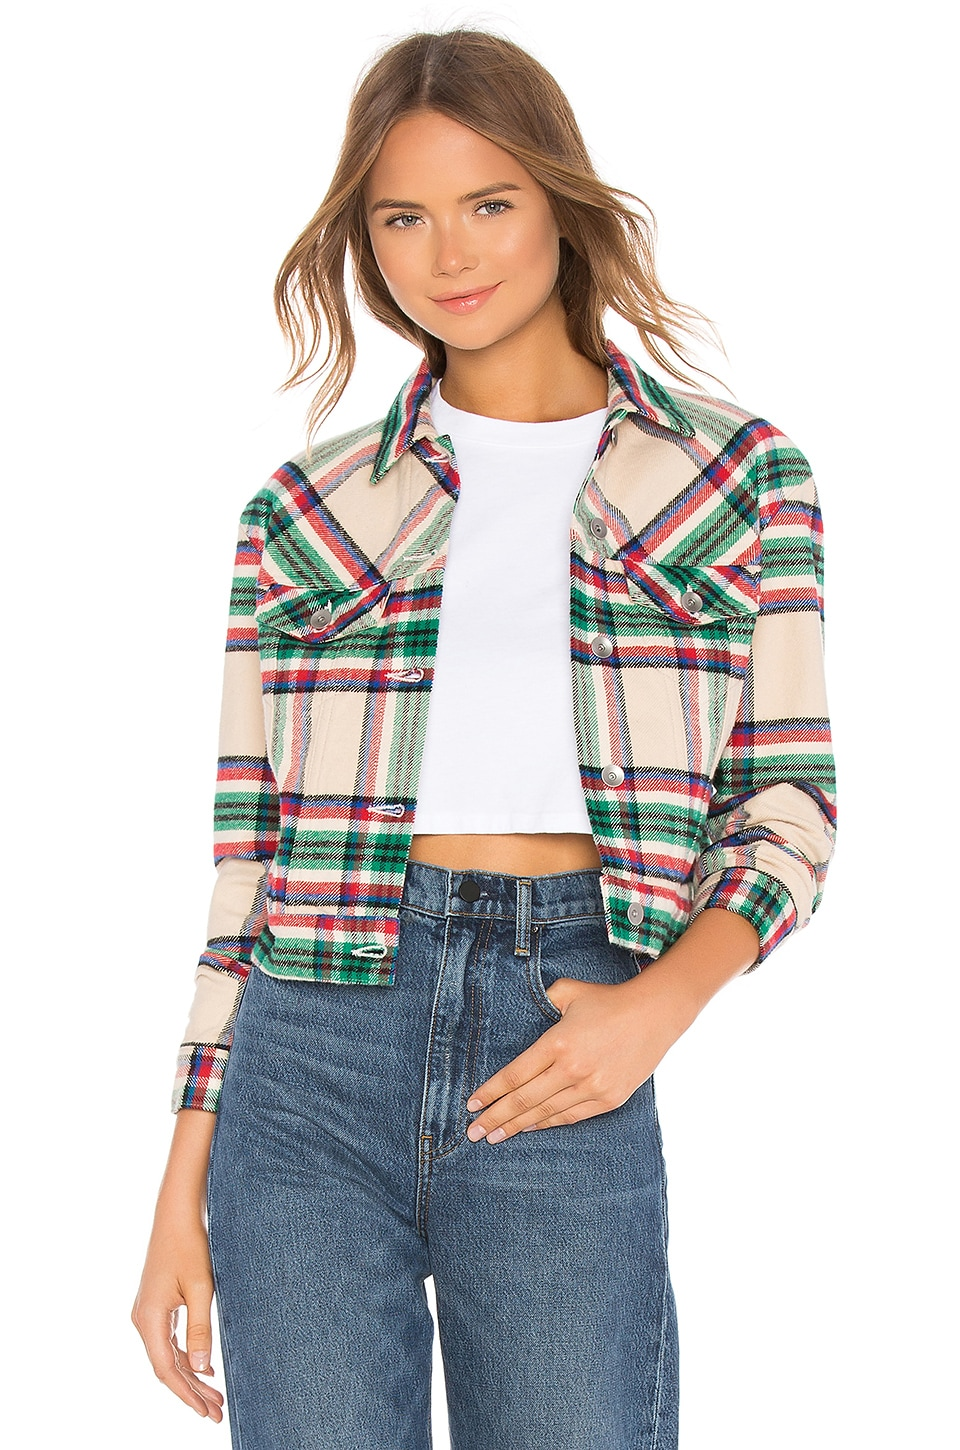 FATHER'S DAUGHTER Kathleen Box Crop Jacket in Tan